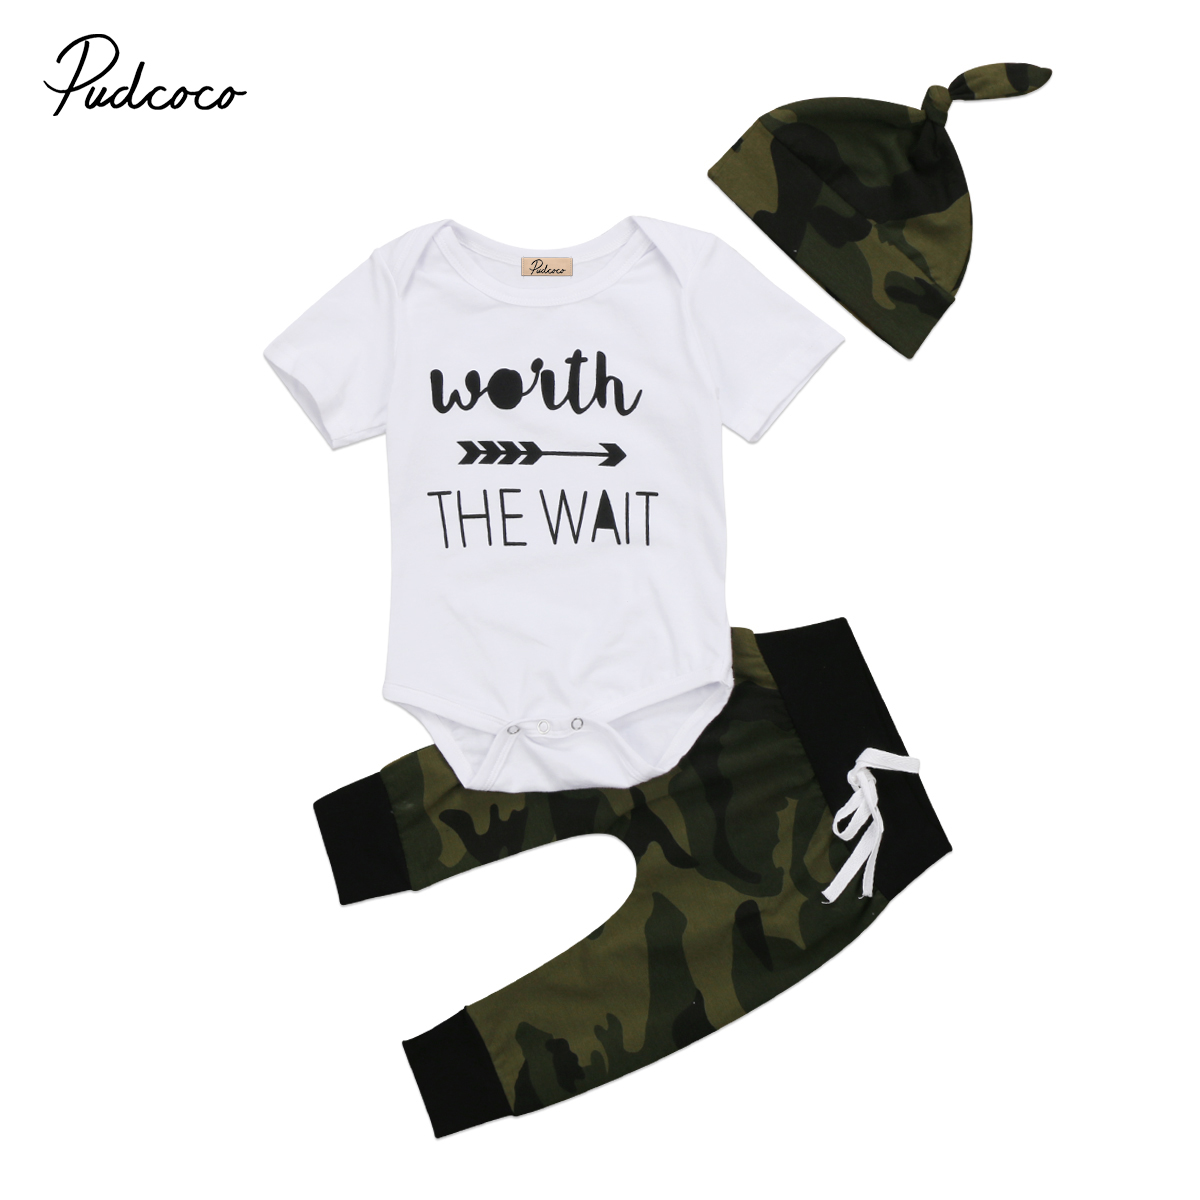 3Pcs Summer Newborn Baby Boy Casual Outfits Short Sleeve O-neck Tops Cotton Romper+Camouflage Pants Hat Set 3PCS